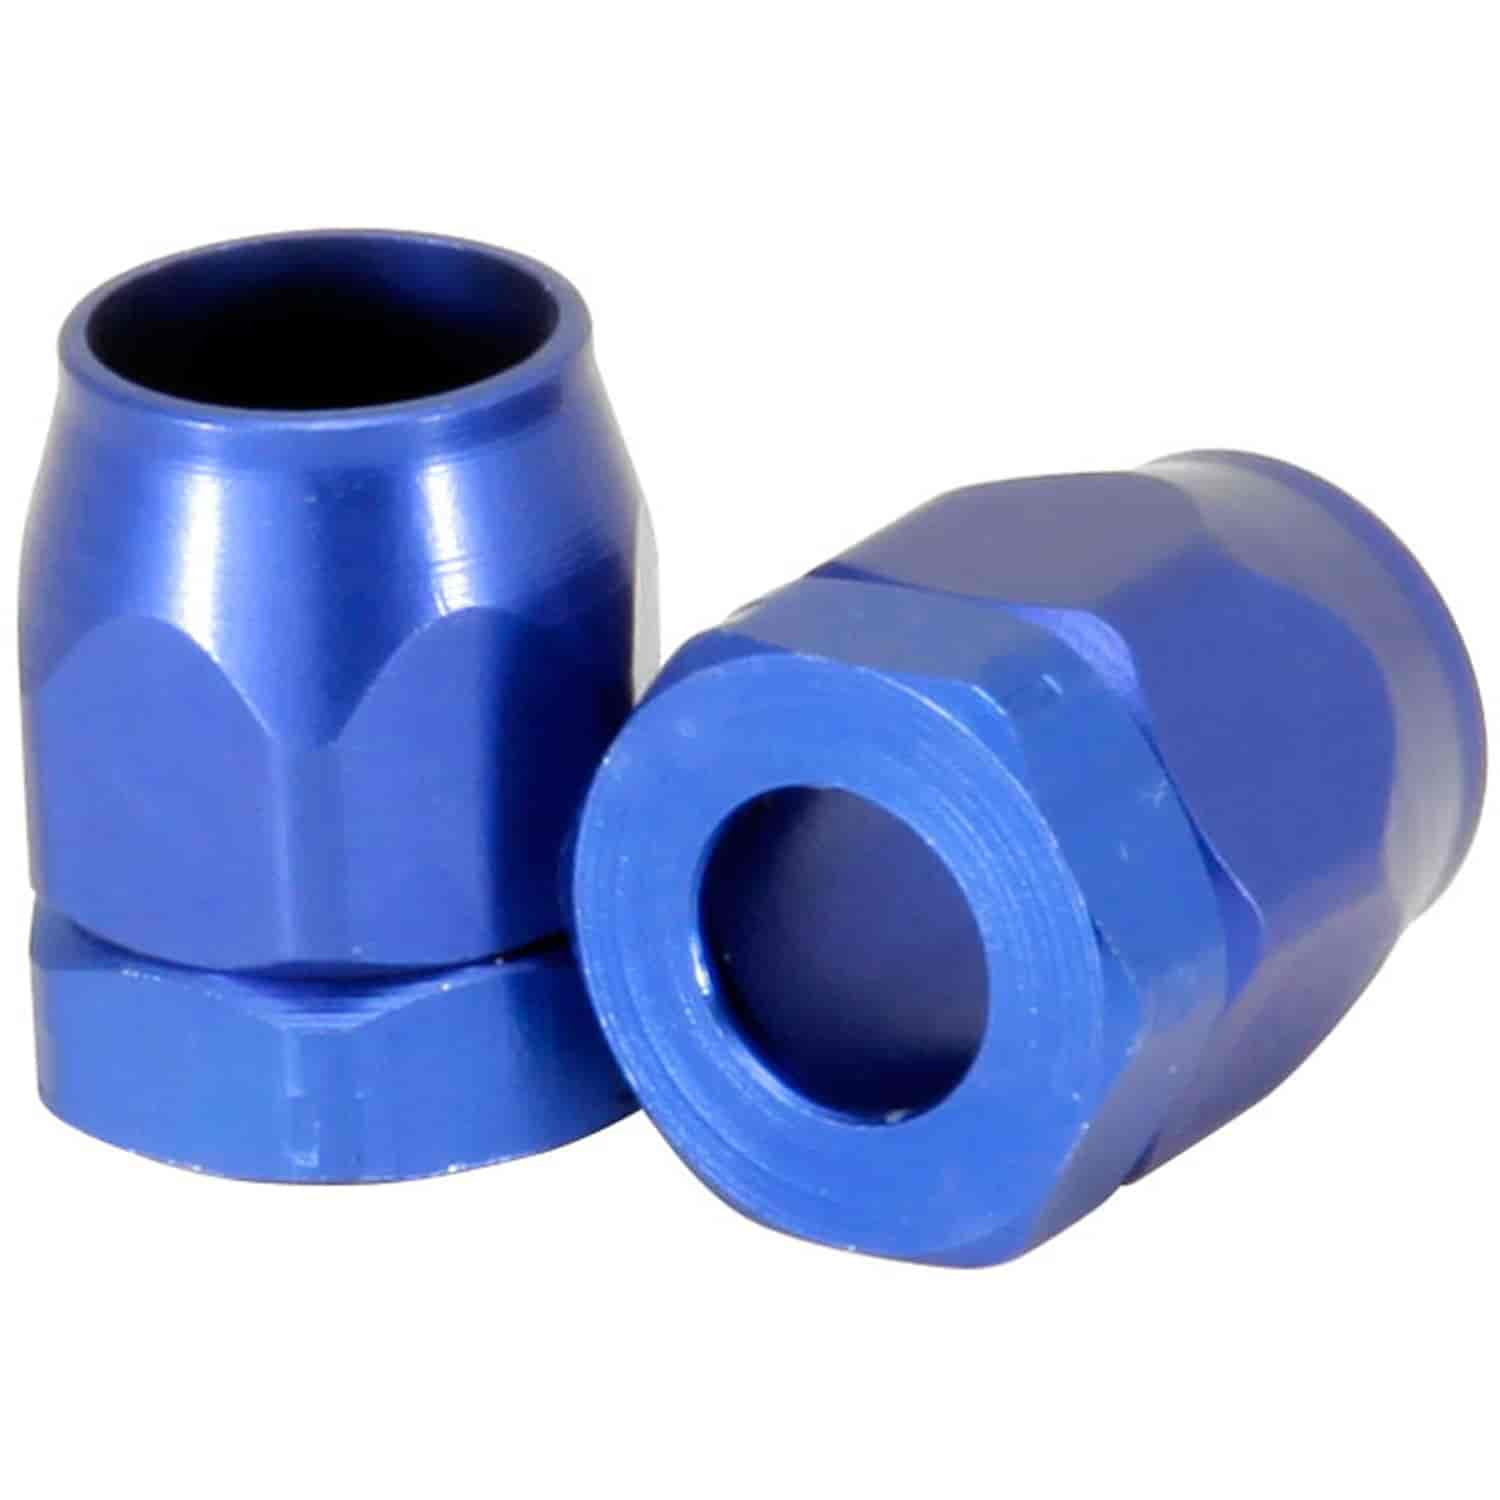 Spectre 1266 - Spectre Magna-Clamp Hose Fittings